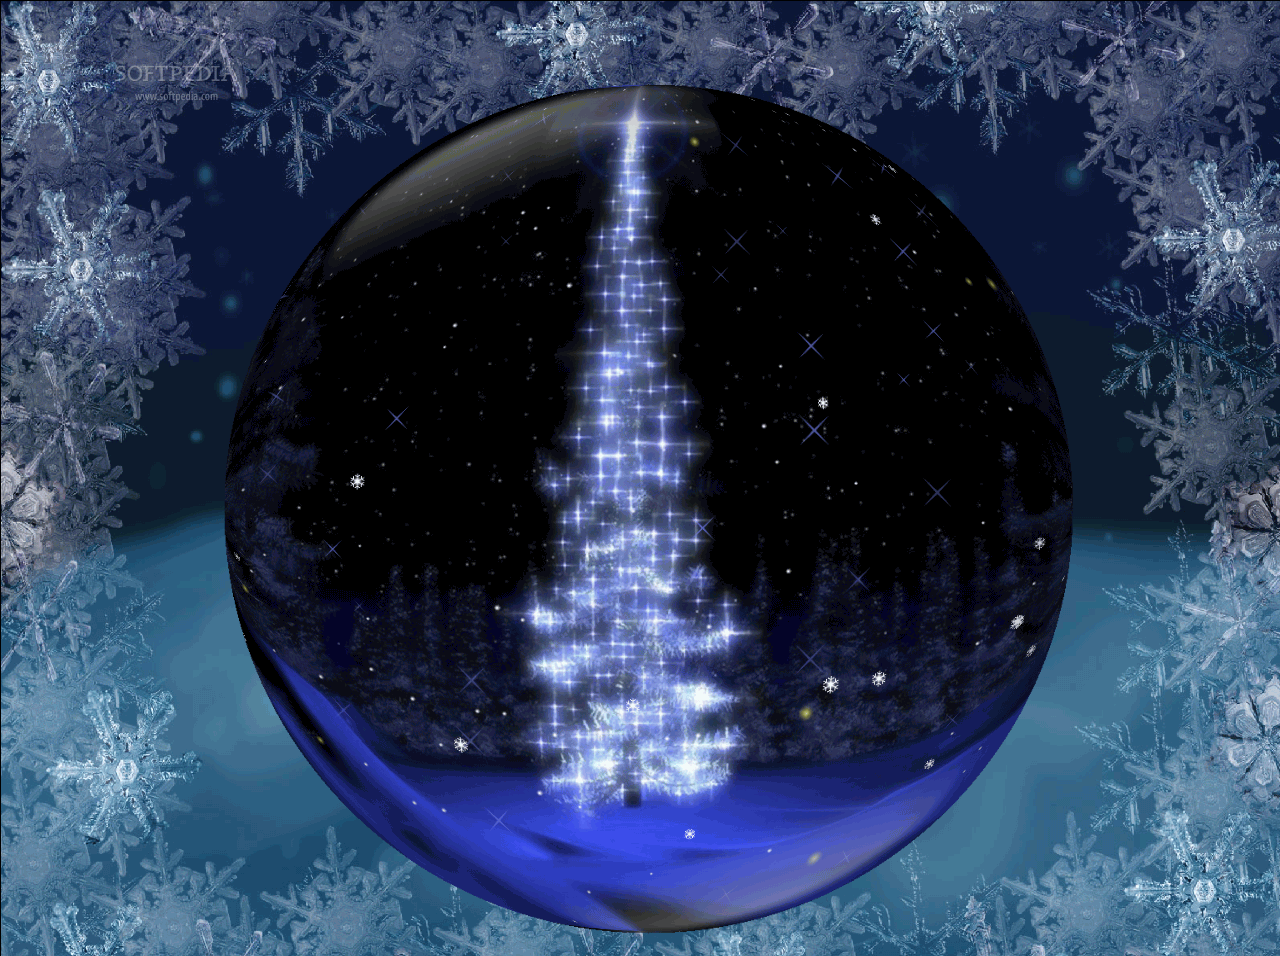 Animated christmas wallpaper for mac wallpapersafari - Anime merry christmas wallpaper ...